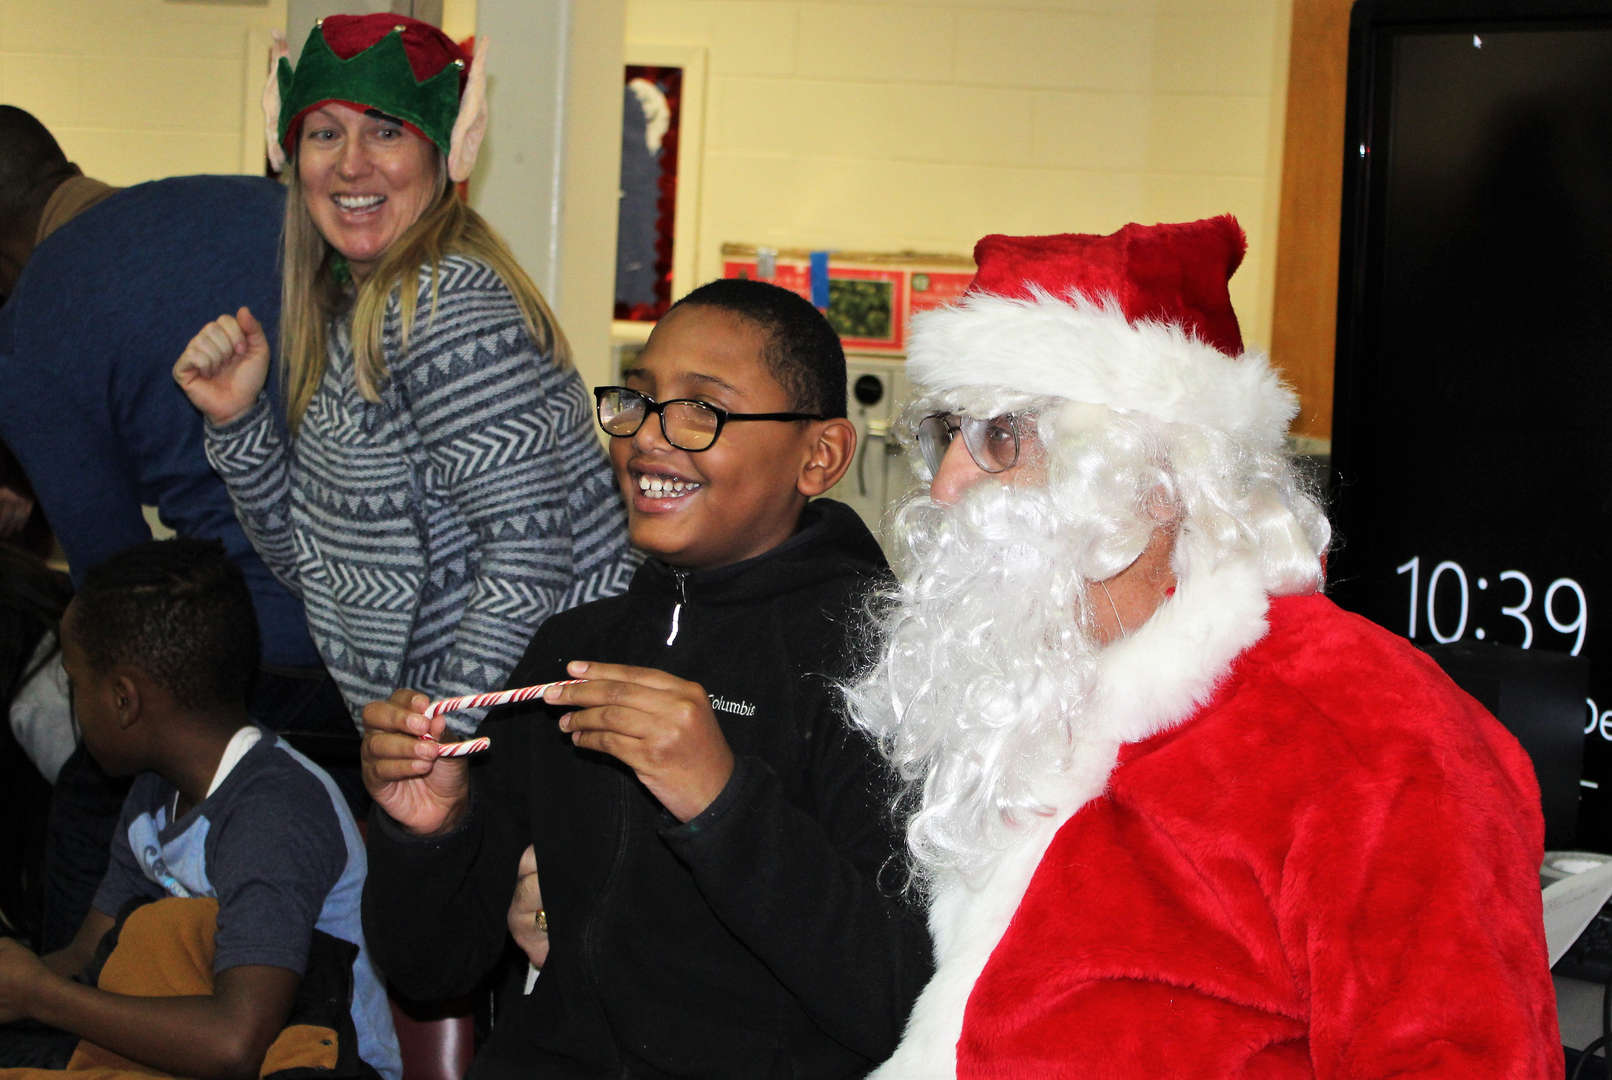 A male student received a candy cane from Santa Claus during the holiday singalong at the Decagon